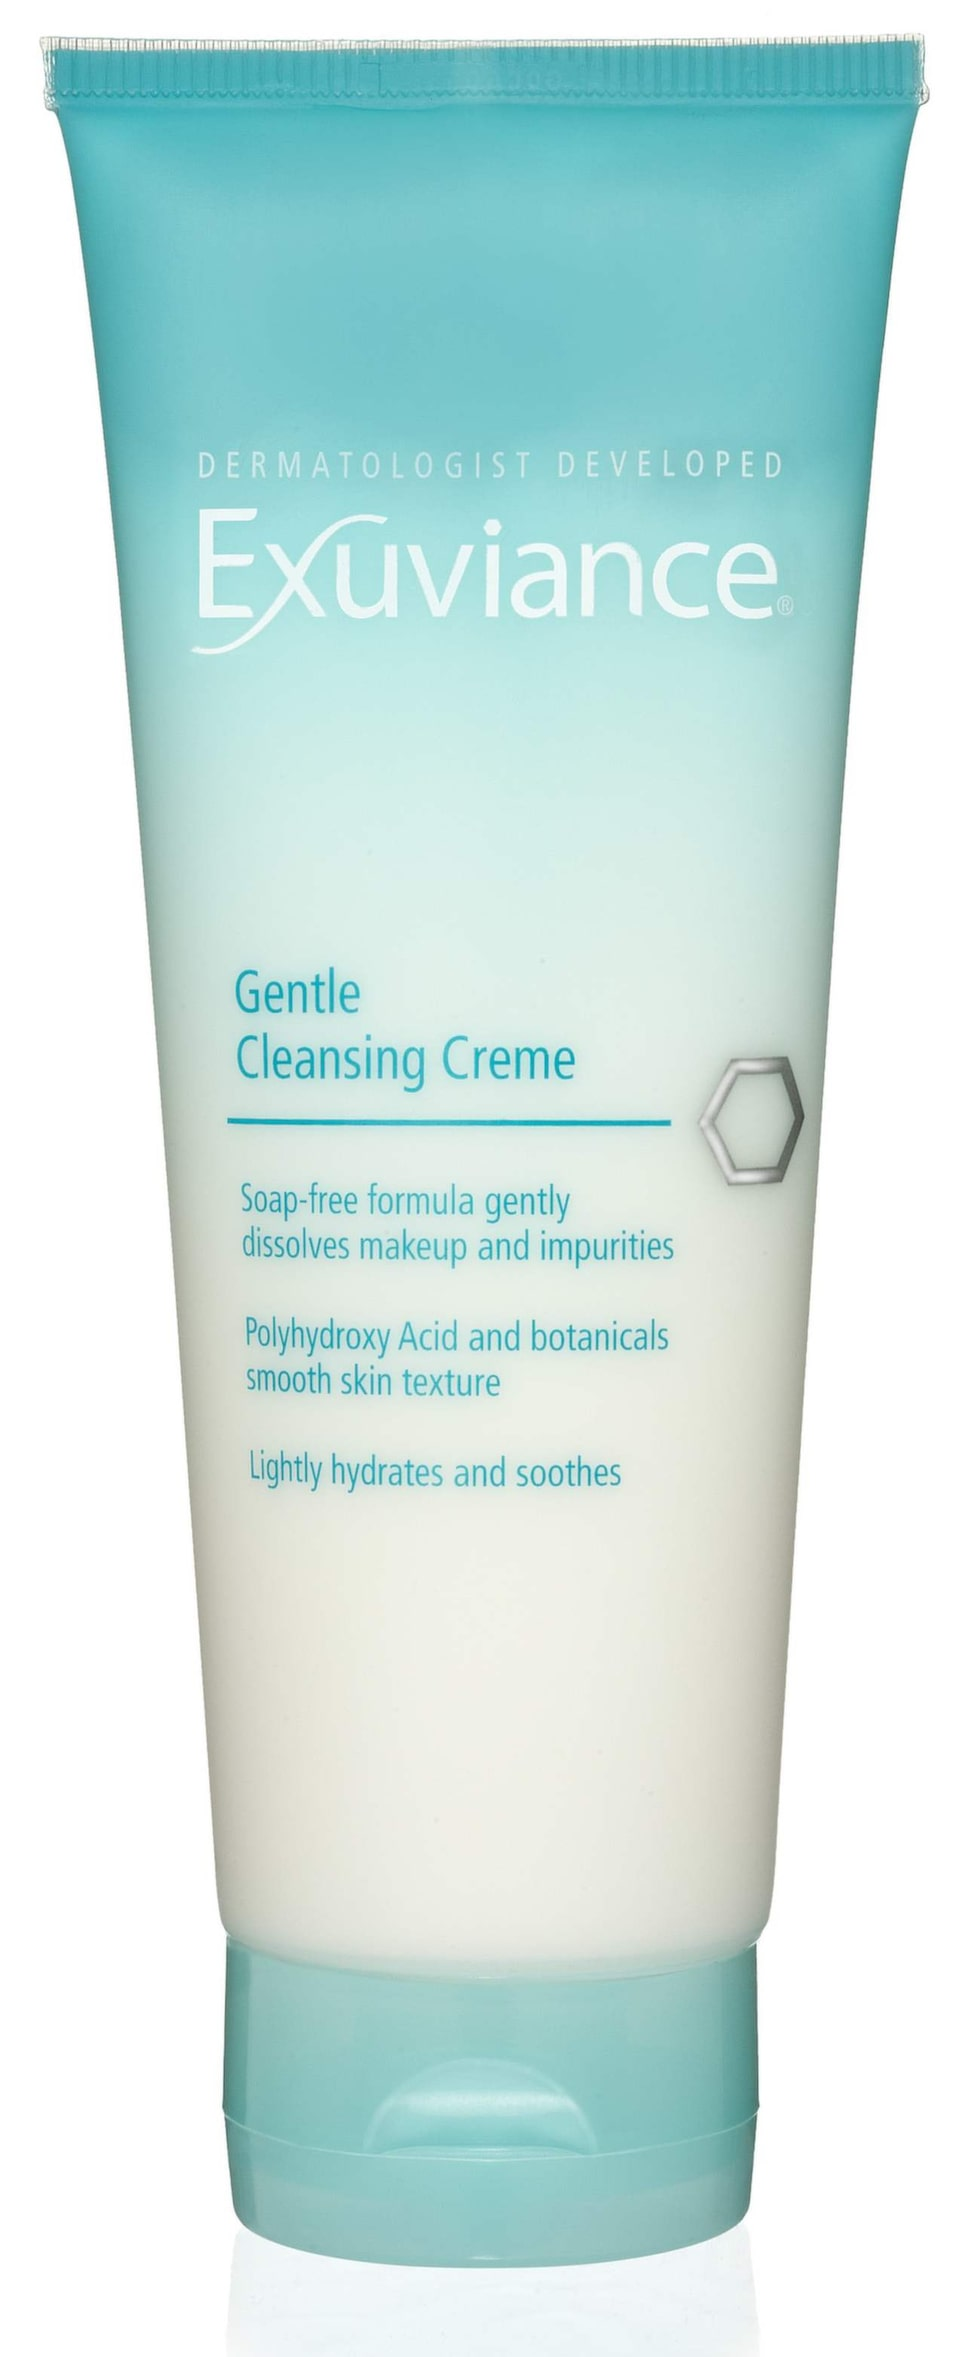 <p>Gentle Cleansing Creme från Exuviance, 299 kronor.</p>